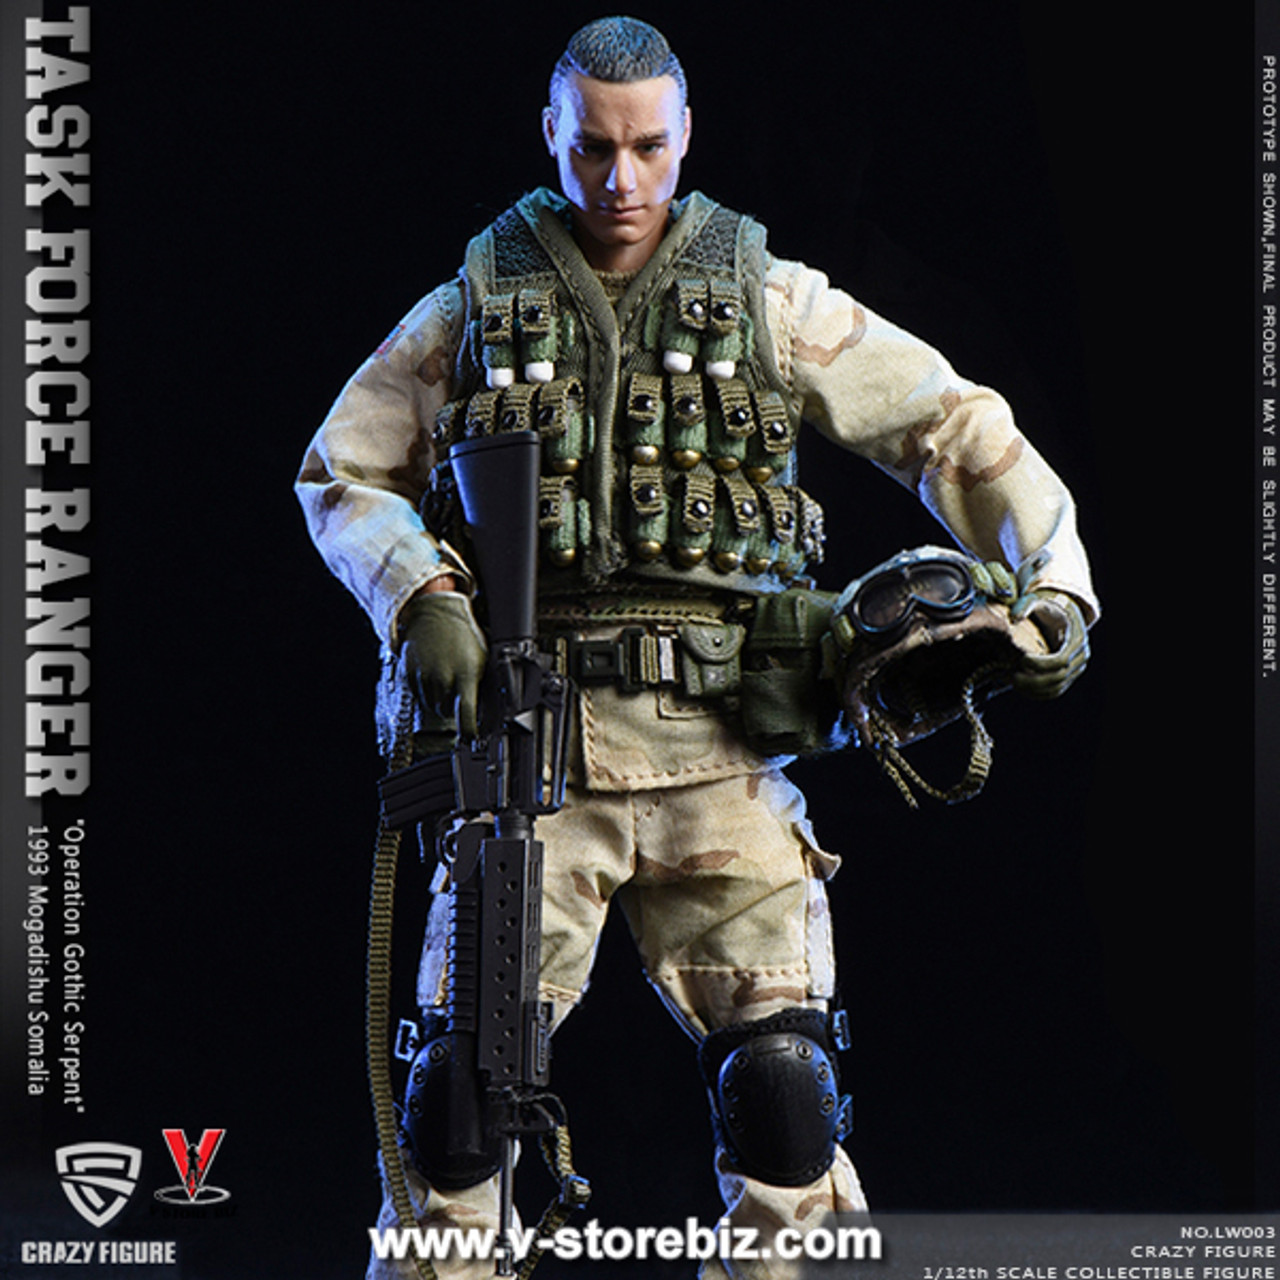 Grenadier Male Head Sculpt 75th Ranger 1//12 scale toy